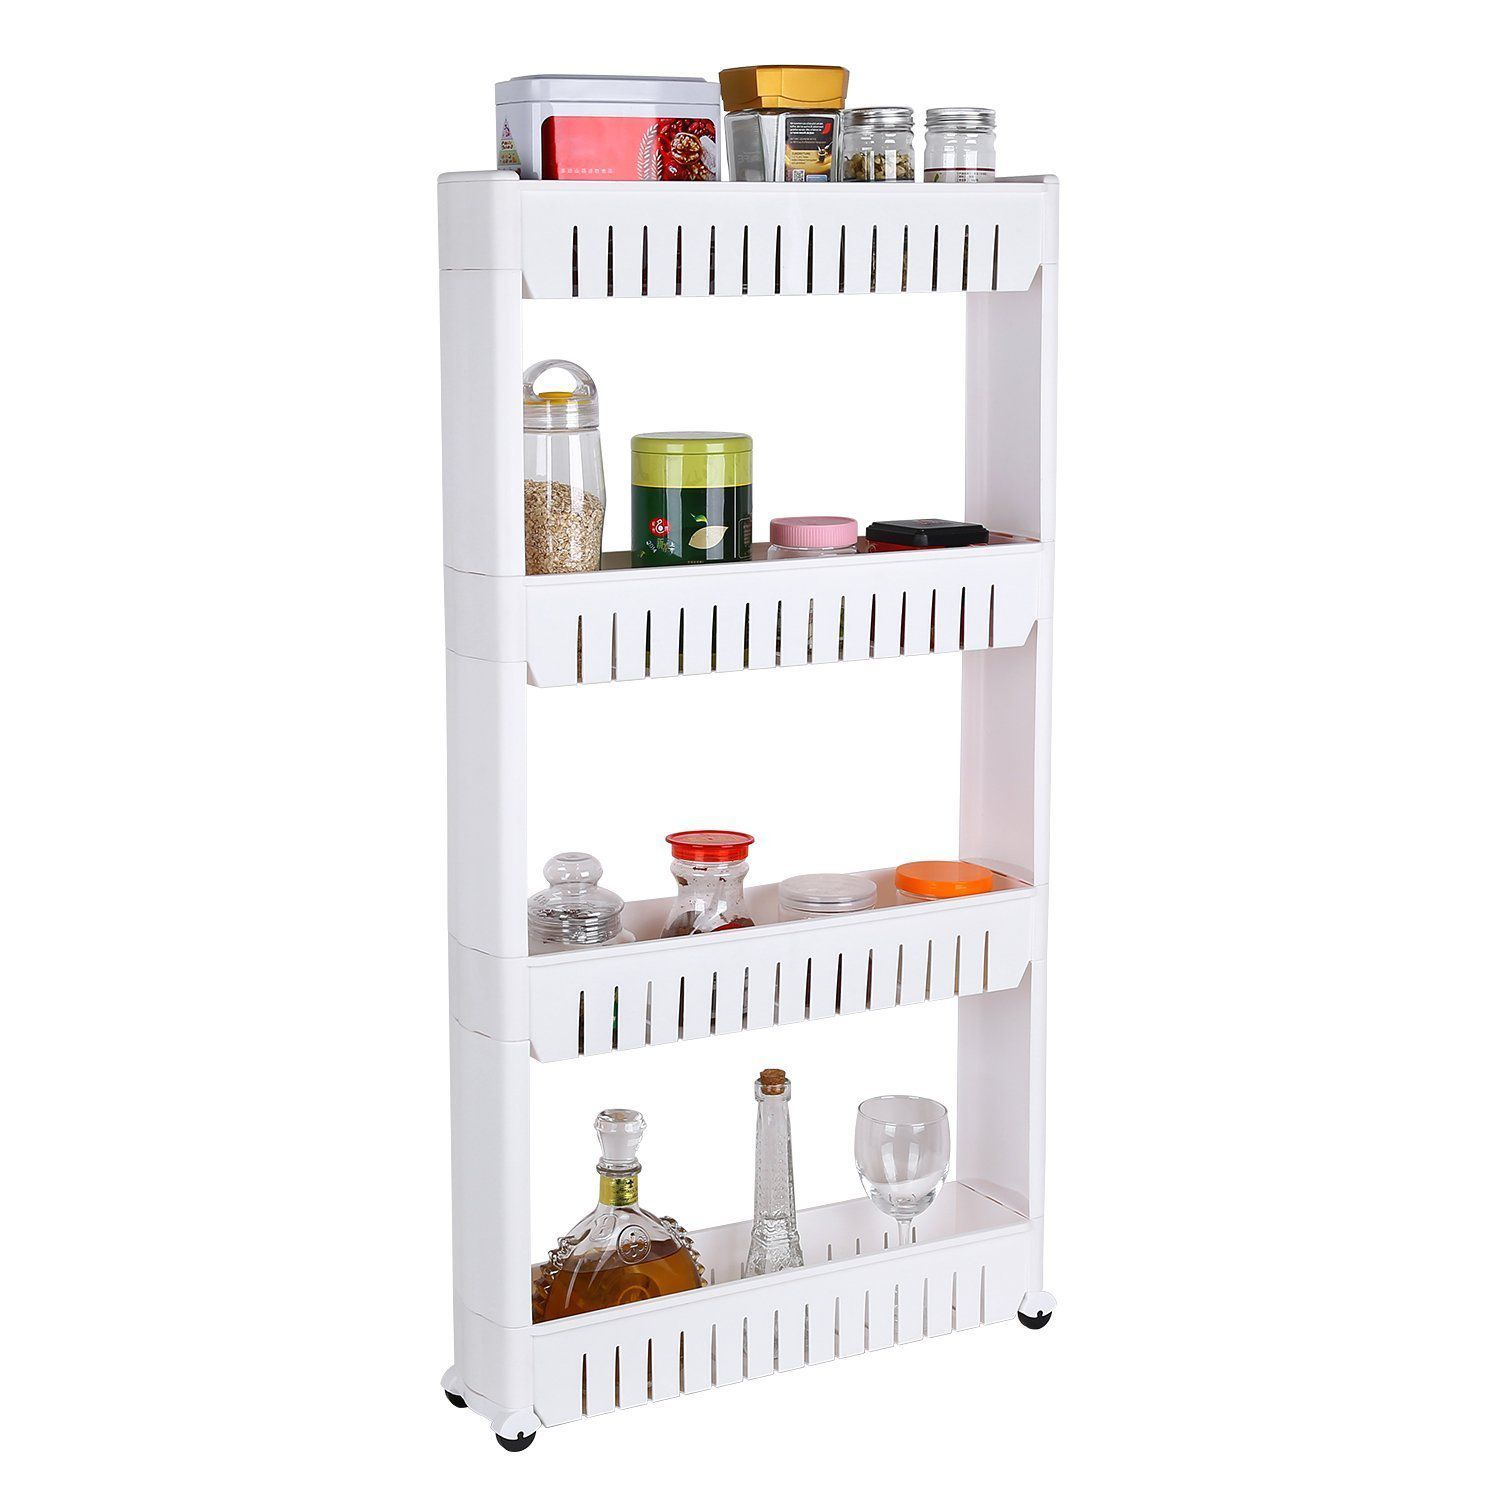 collapsible 4 layer slim storage organiser for kitchen rack bathroom rh snapdeal com